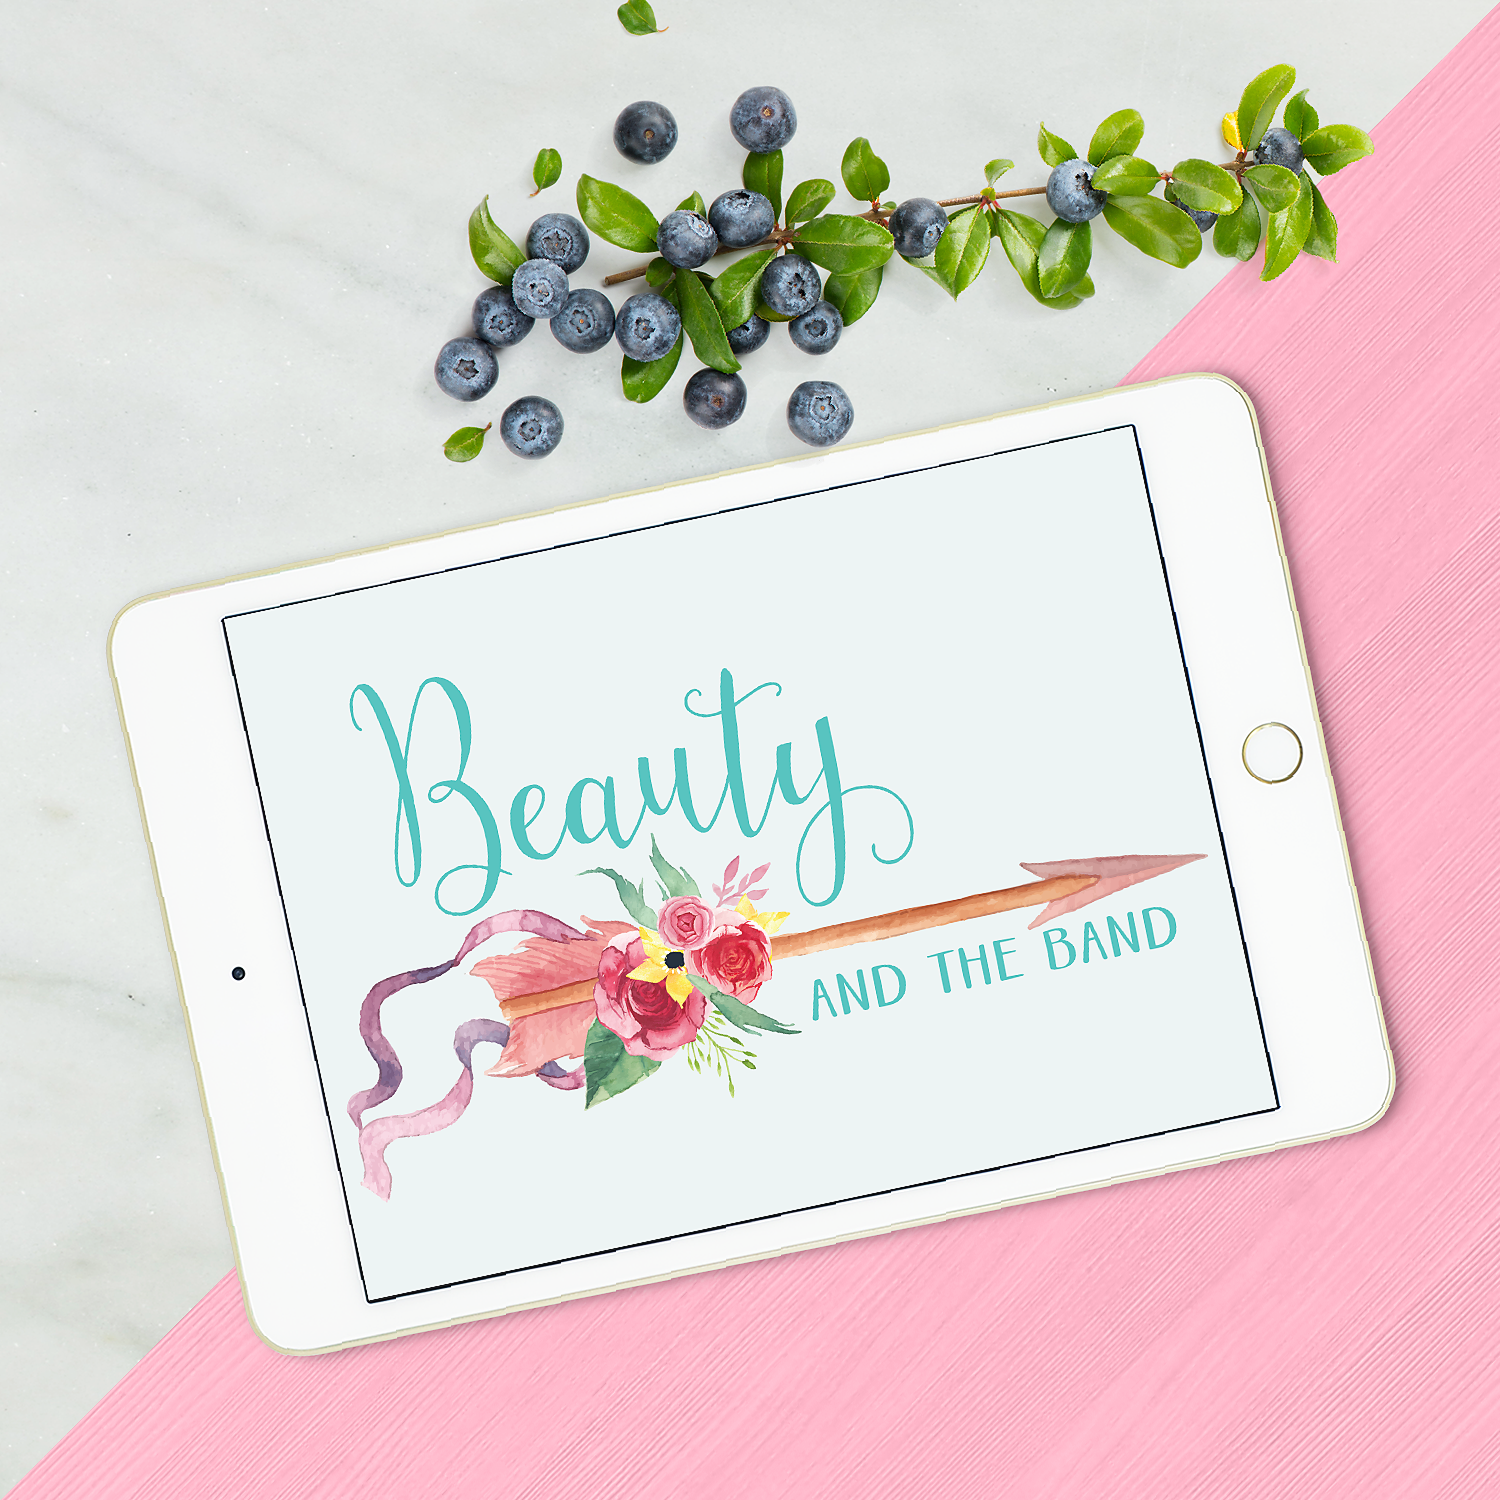 New watercolour logo for blogger, Beauty & the Band by www.garlicfriday.com